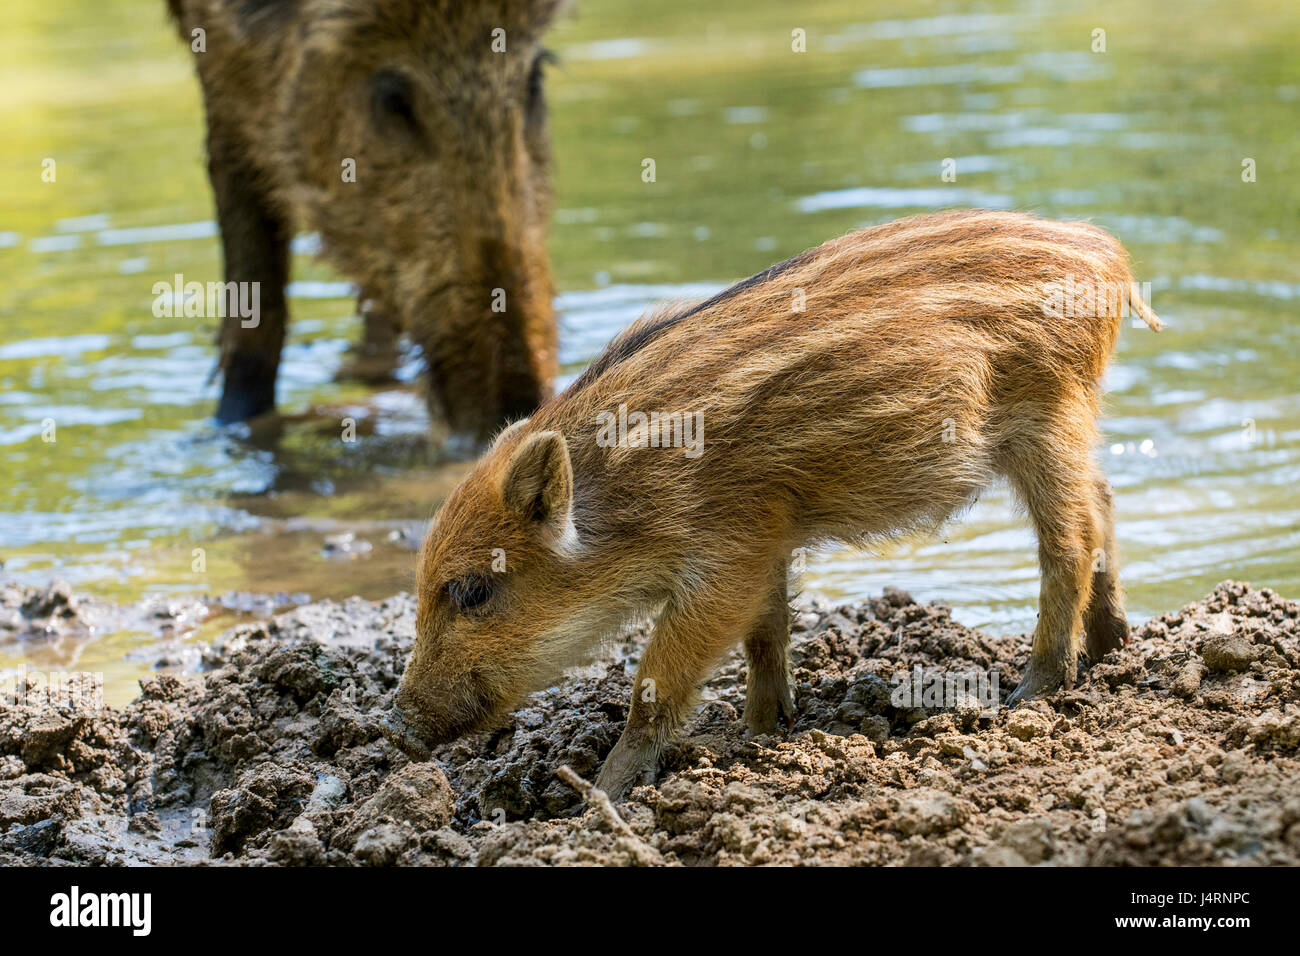 Wild boar (Sus scrofa) piglet foraging in the mud along lake shore in spring - Stock Image